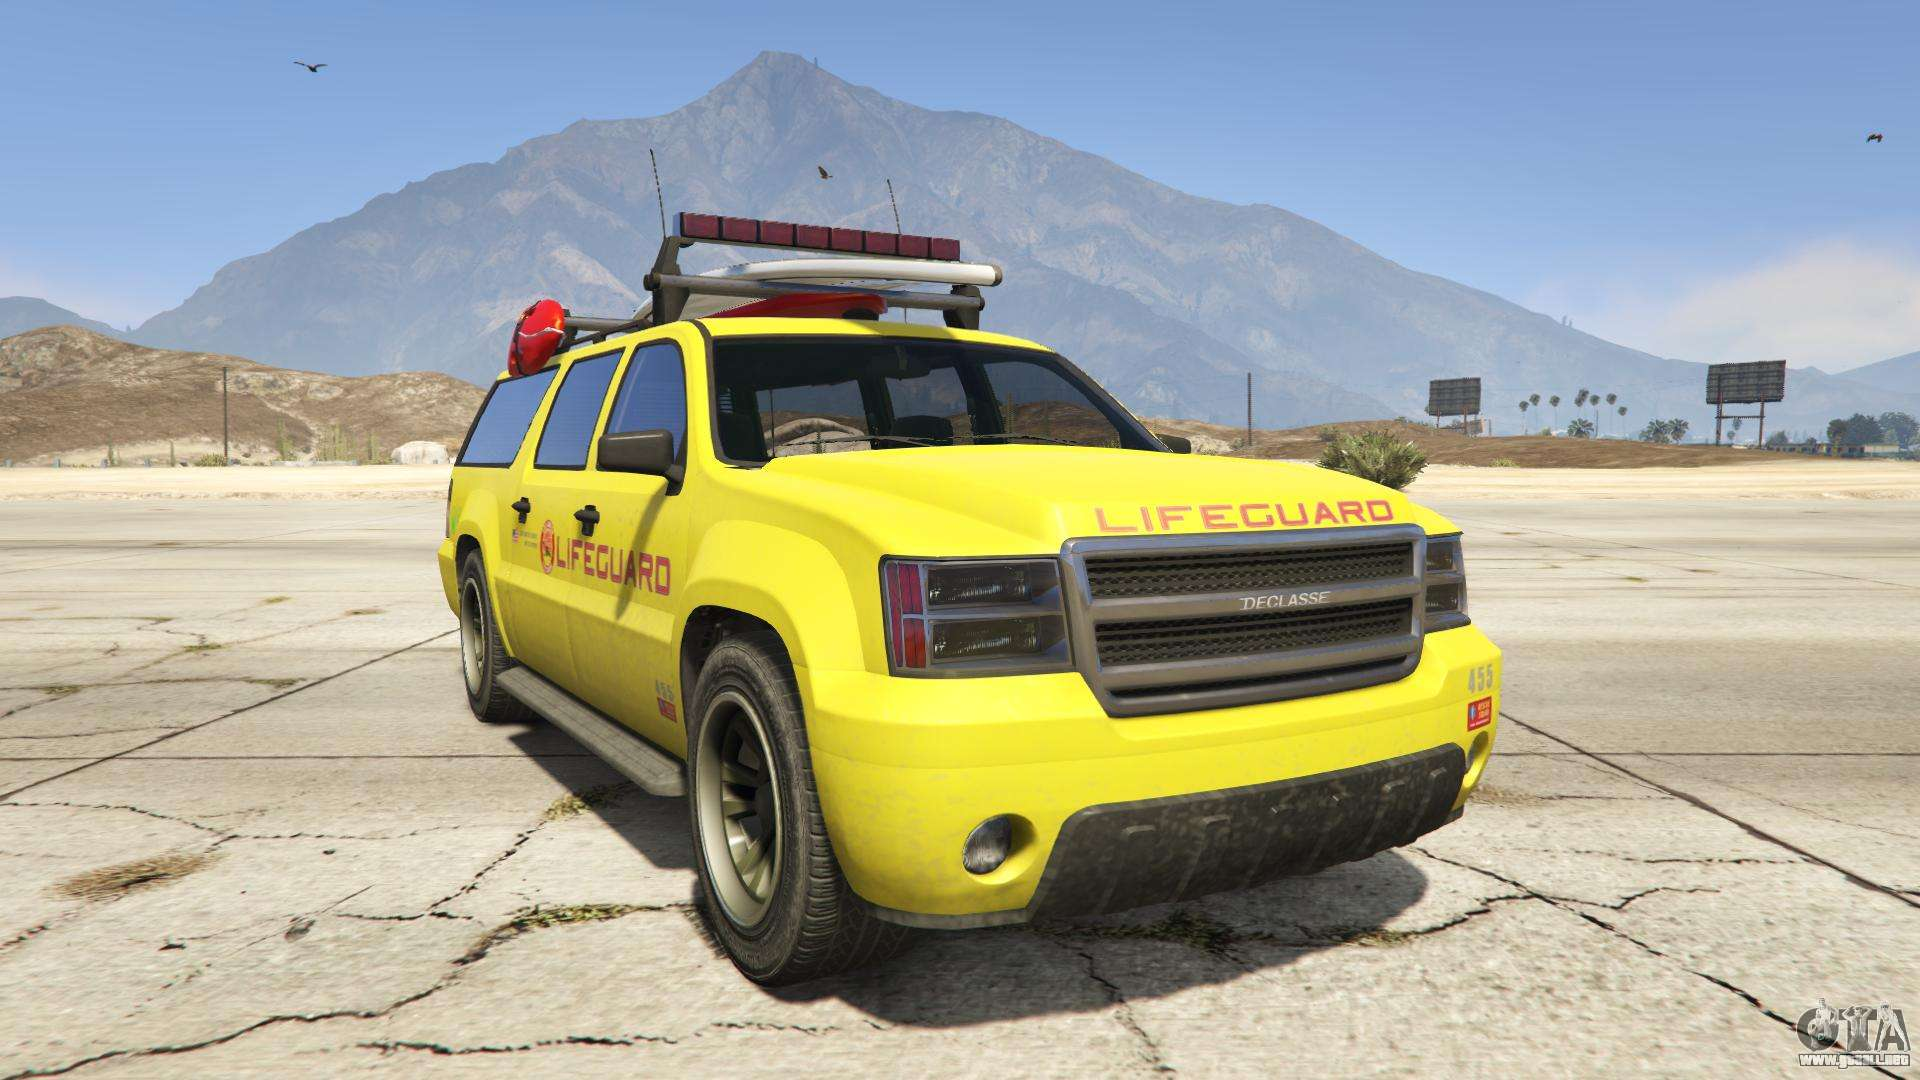 GTA 5 Declasse Lifeguard - vista frontal